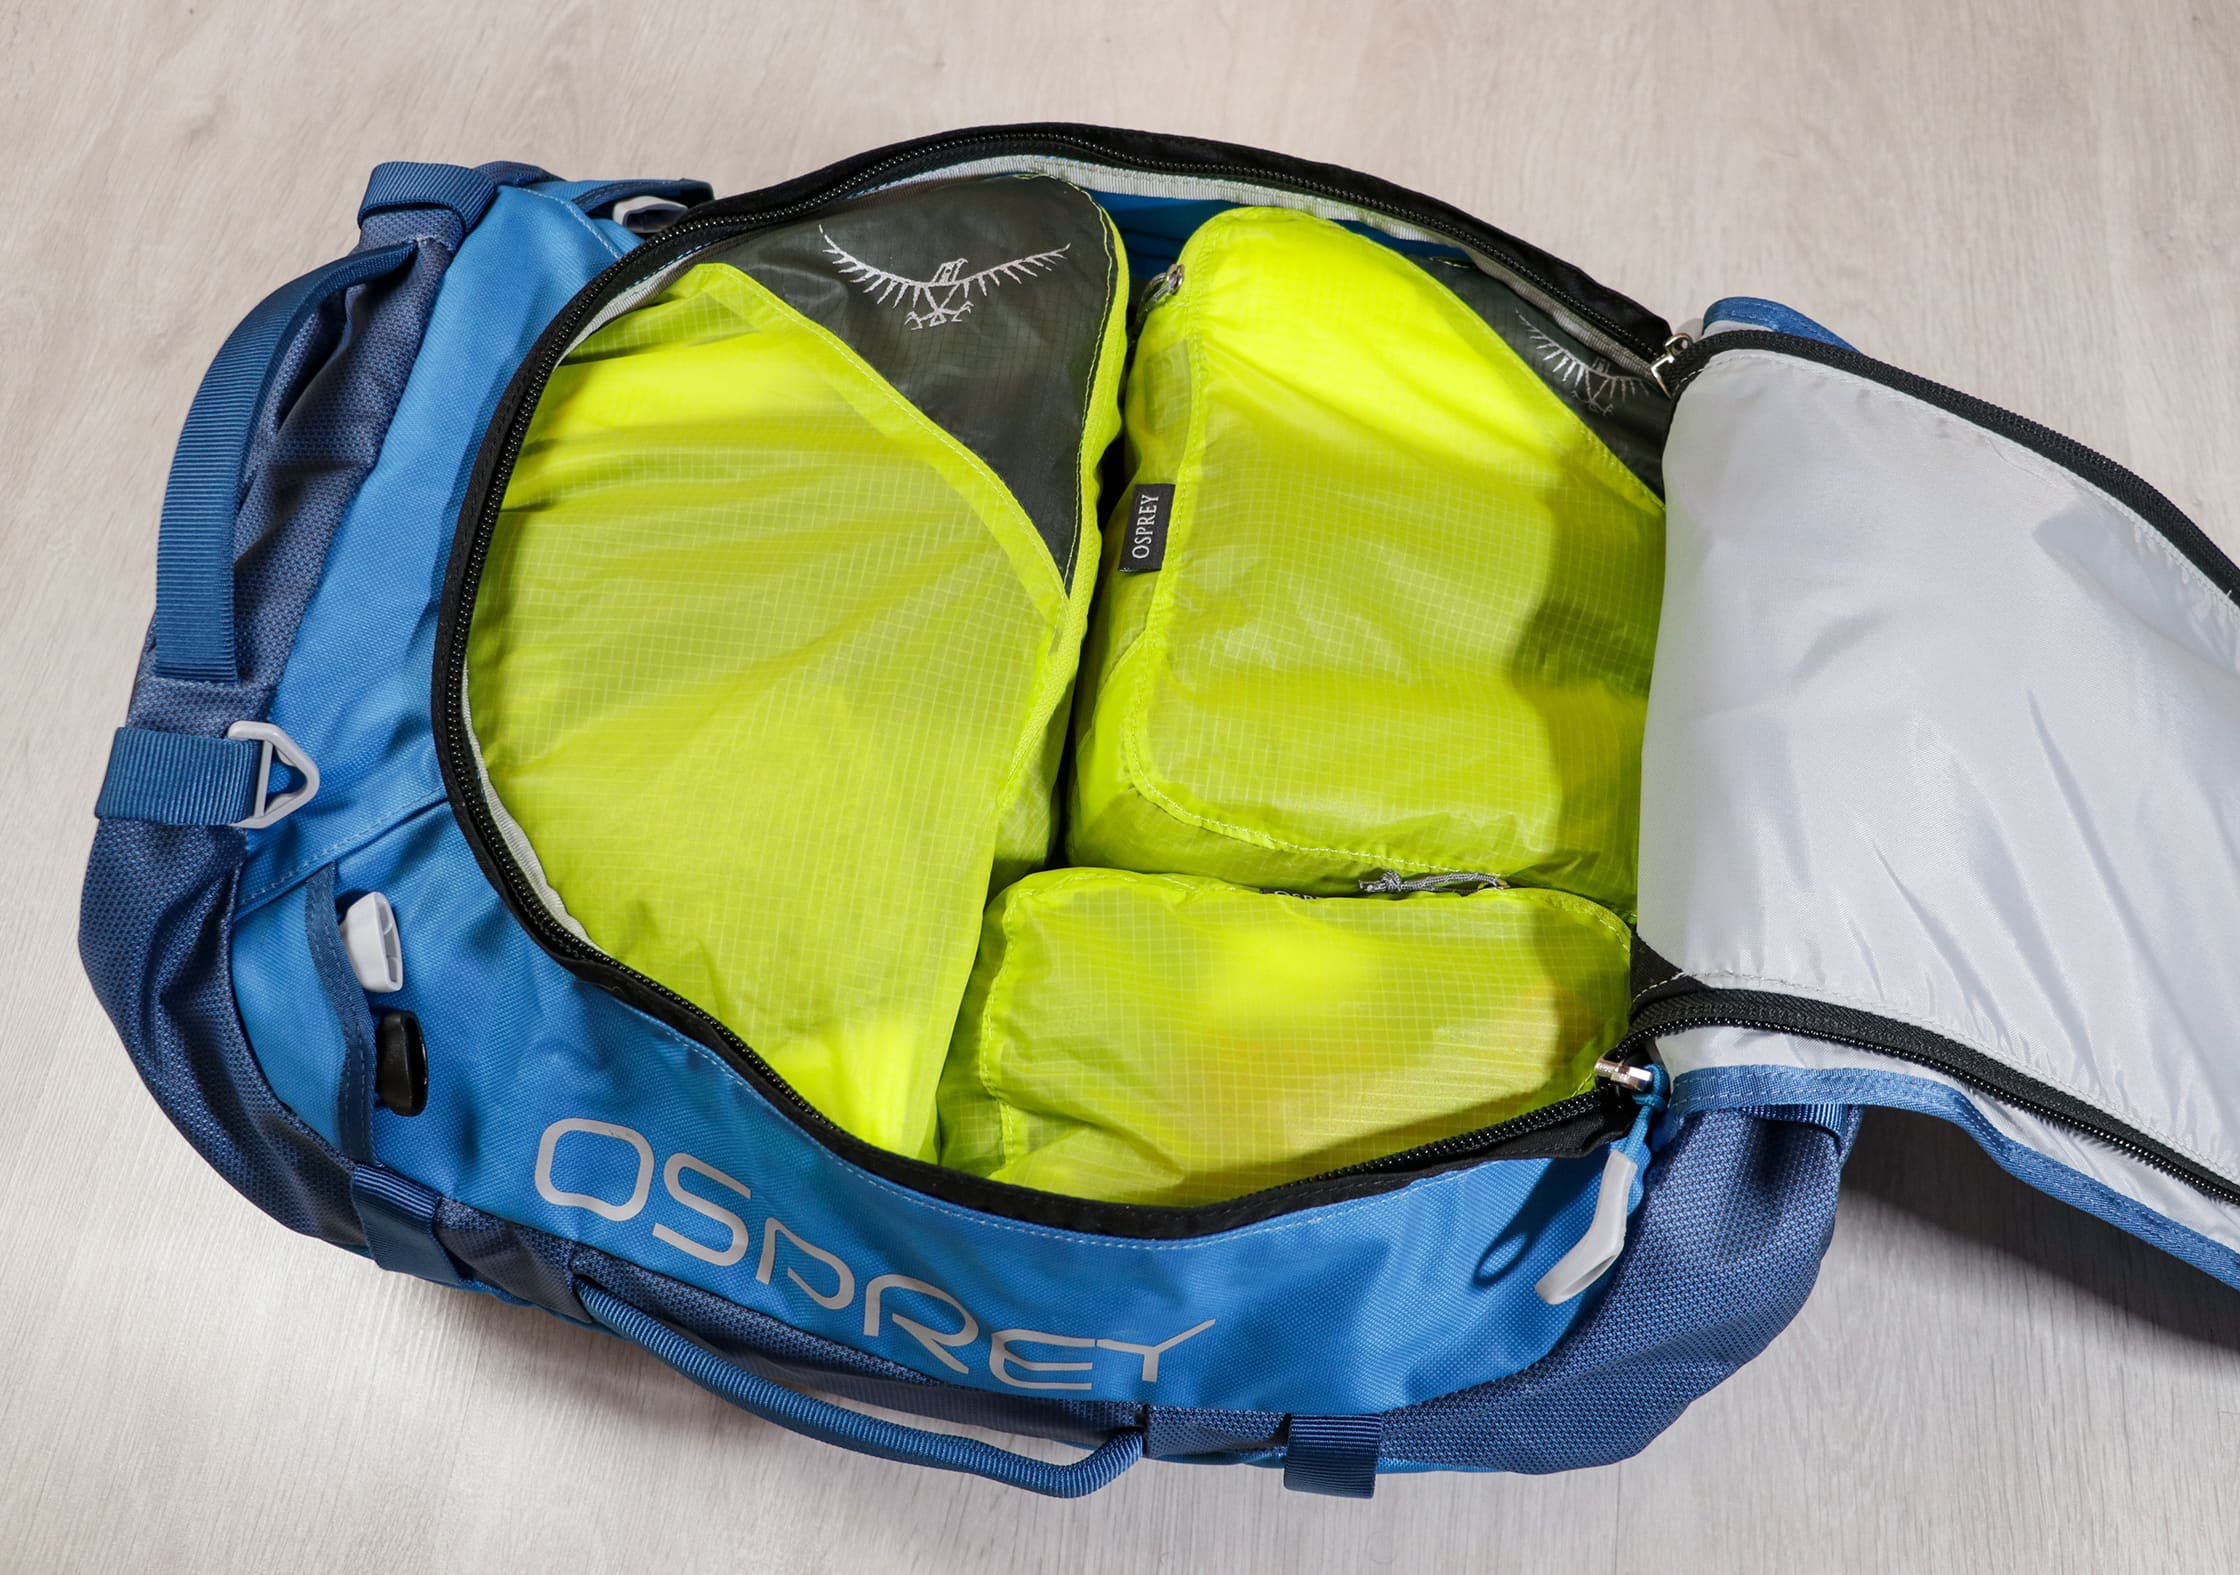 Osprey Ultralight Packing Cube Set In An Osprey Transporter 40